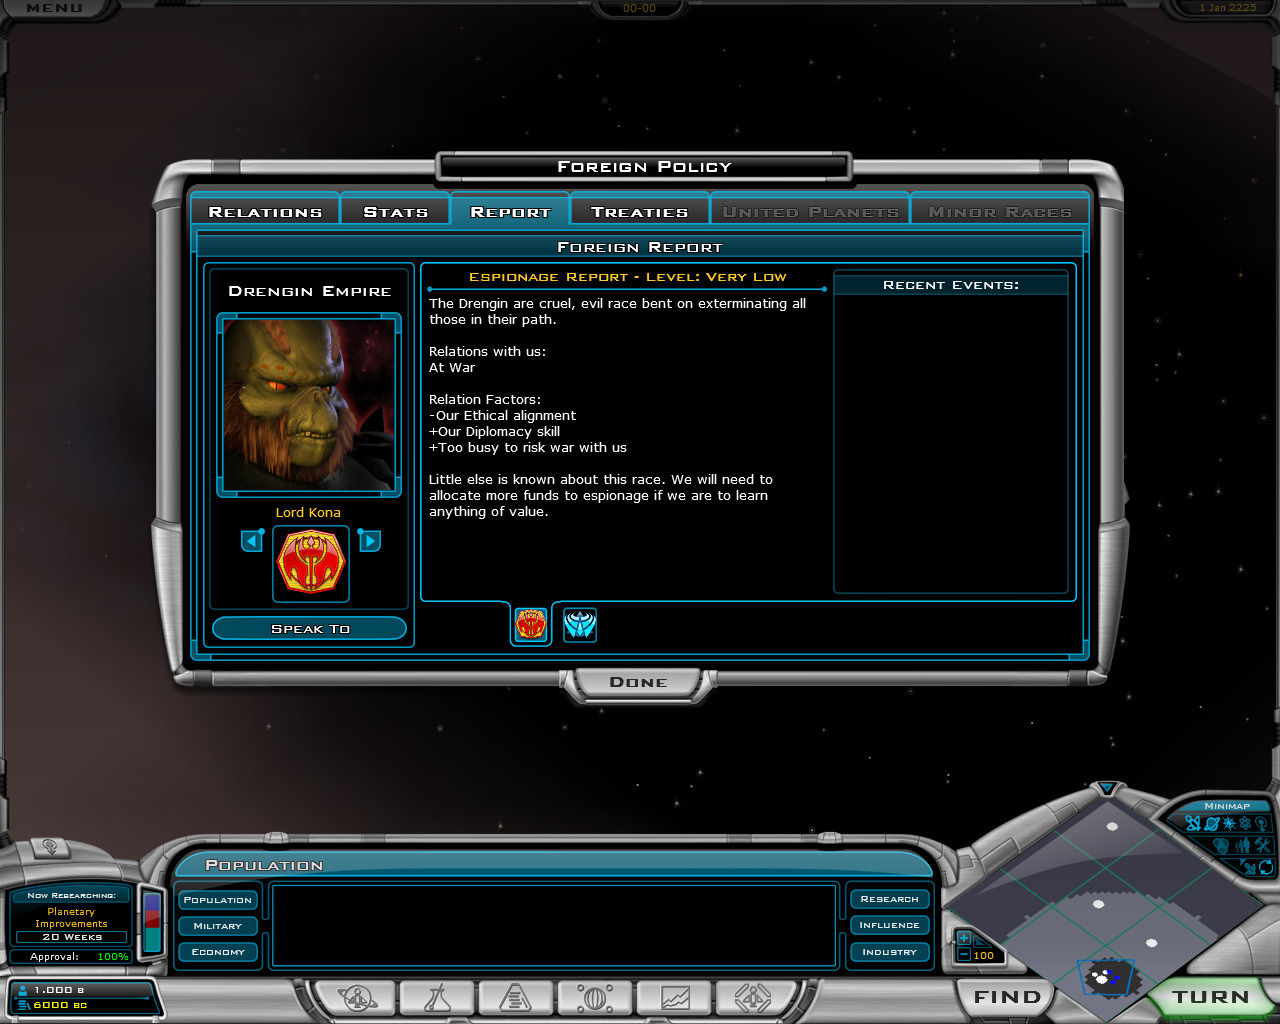 Galactic Civilizations II: Dread Lords Windows Information about your foe (and other players in the universe)